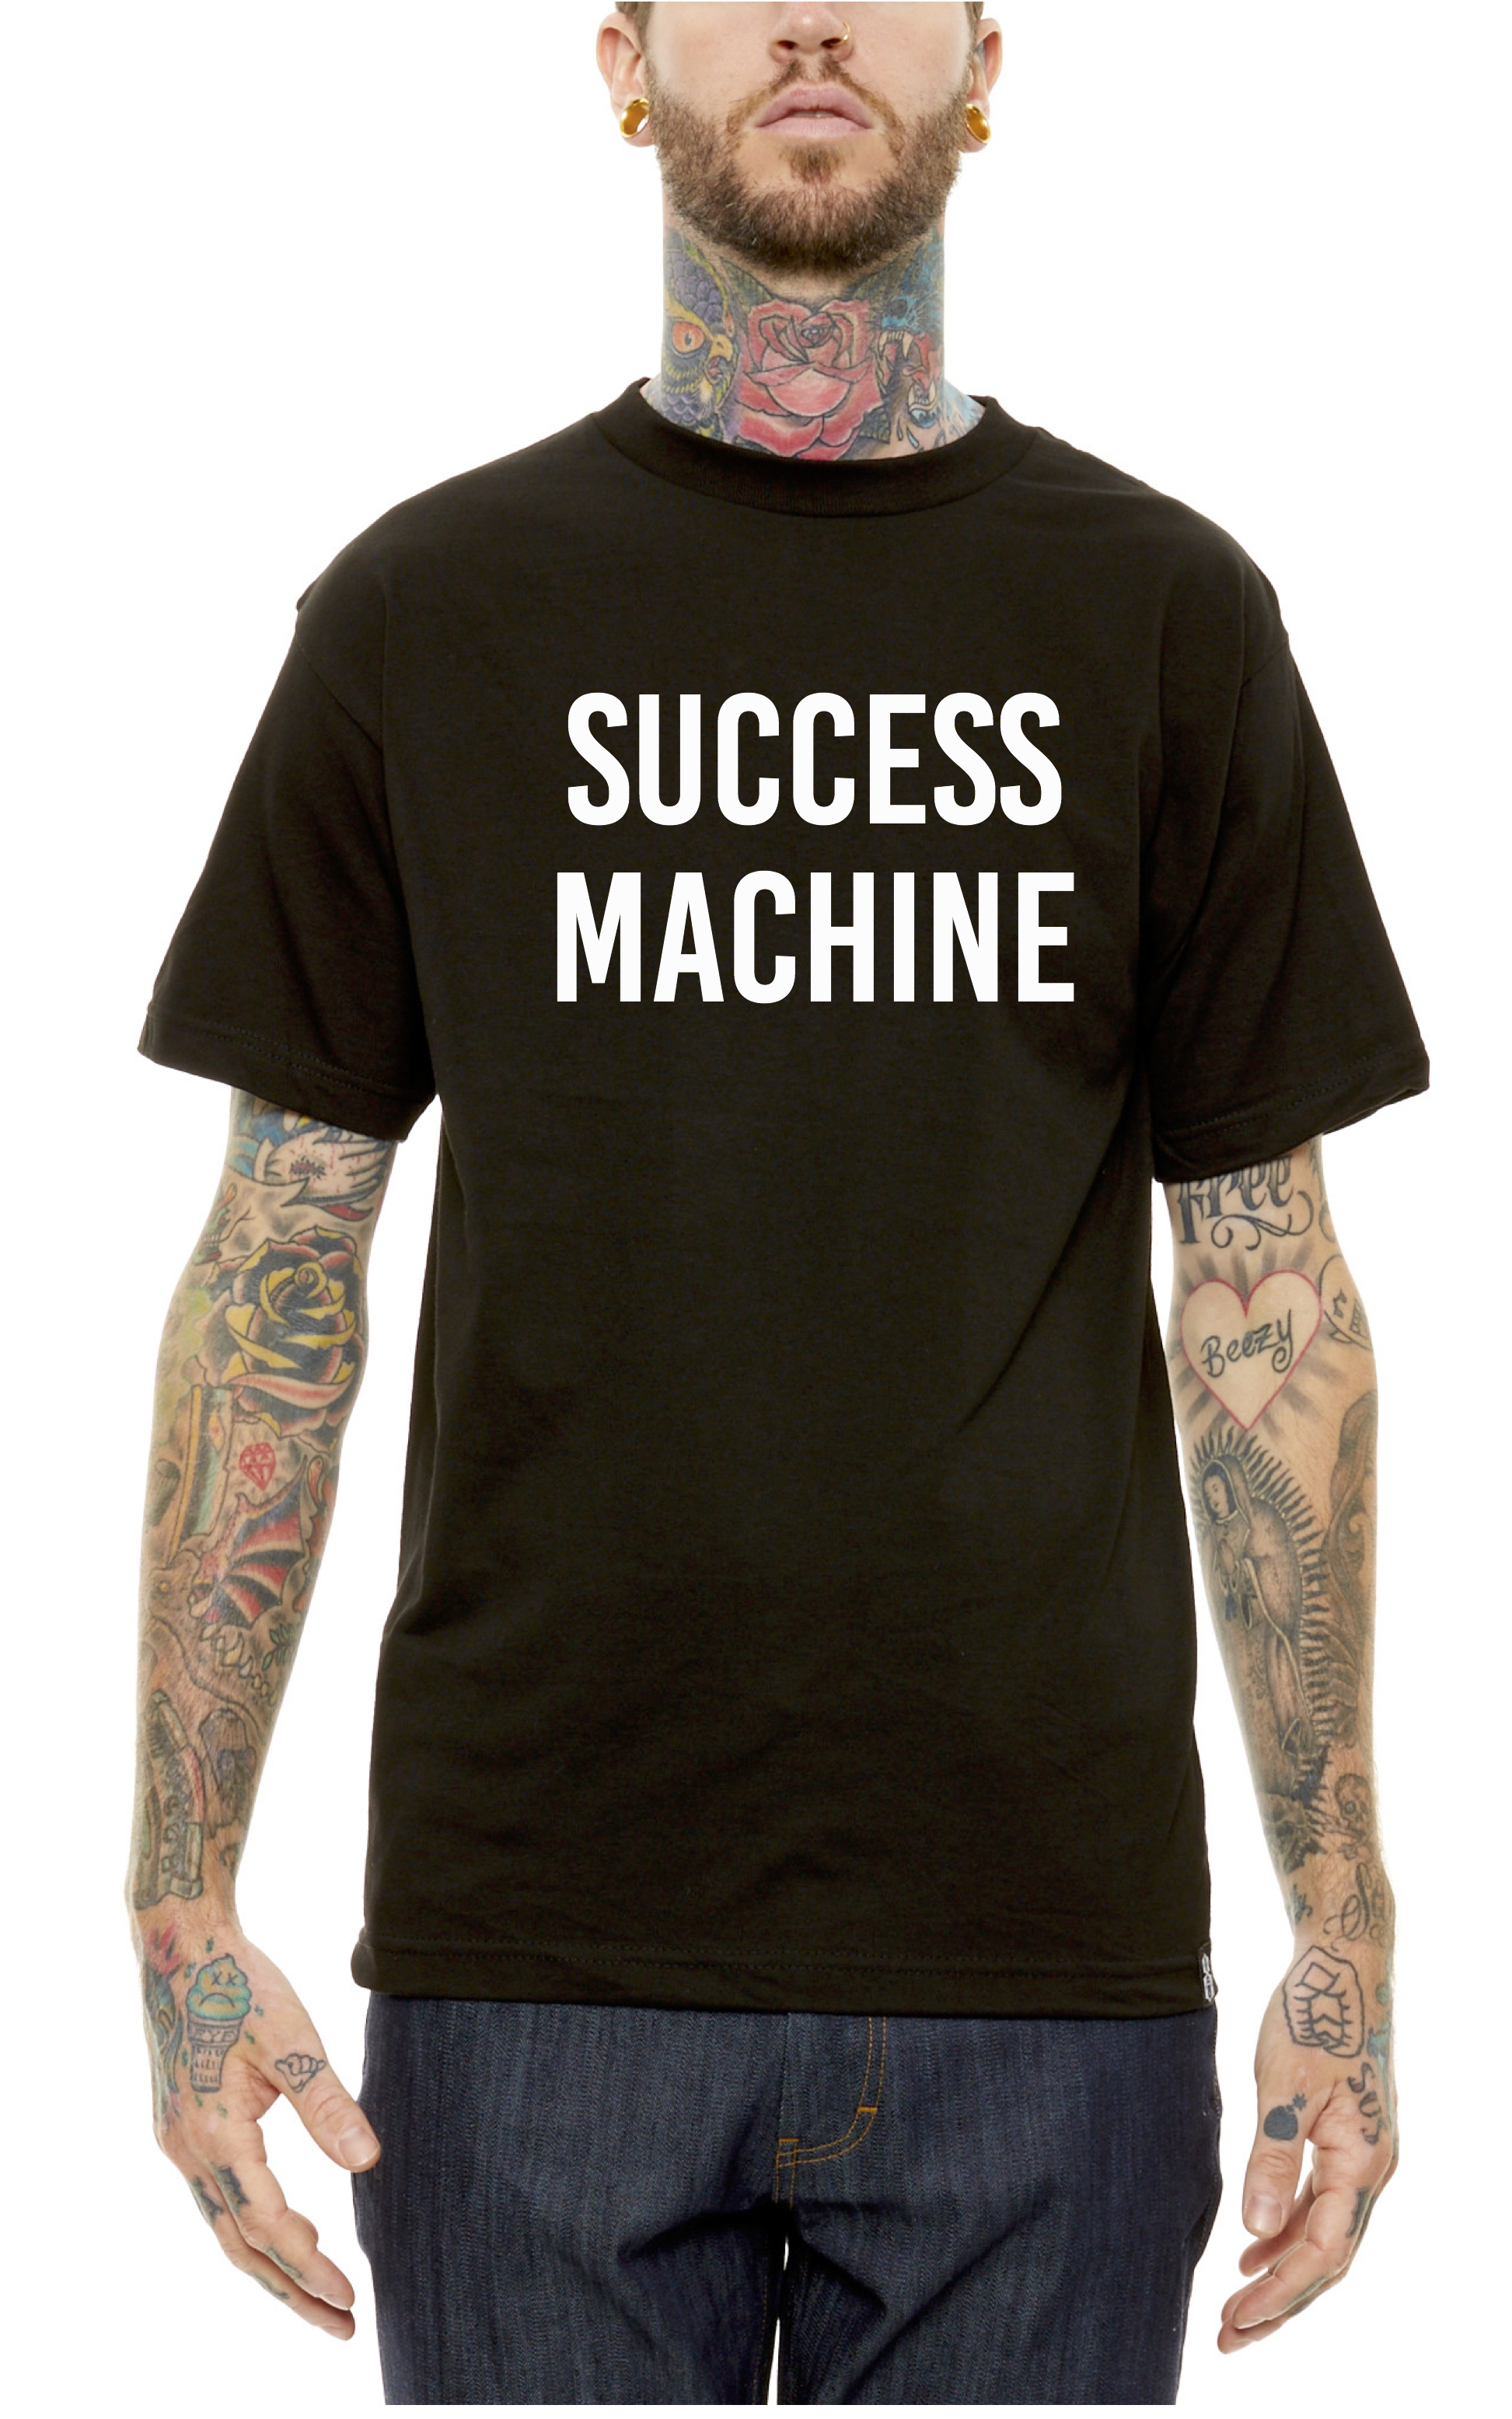 Here is a look at  Stereotype Co  latest collaboration with Comedian/Artist  Ray Vazquez  'Success Machine'. This tee was designed for those that are out there working hard. Success can only be defined by you.  The first 80 people who purchase a ticket for  Comedy Night At The Veranda will get one of these FREE. $15 ticket for a tee and a comedy show. Dopeness. See you tomorrow at  Silver Lake Golf Course & The Veranda  and sunday at  Shaolin Tee Party   Hit up  www.verandacomedy.eventbrite.com  use code STEREOTYPE for $5 off advanced tickets. All tee's are while supplies last